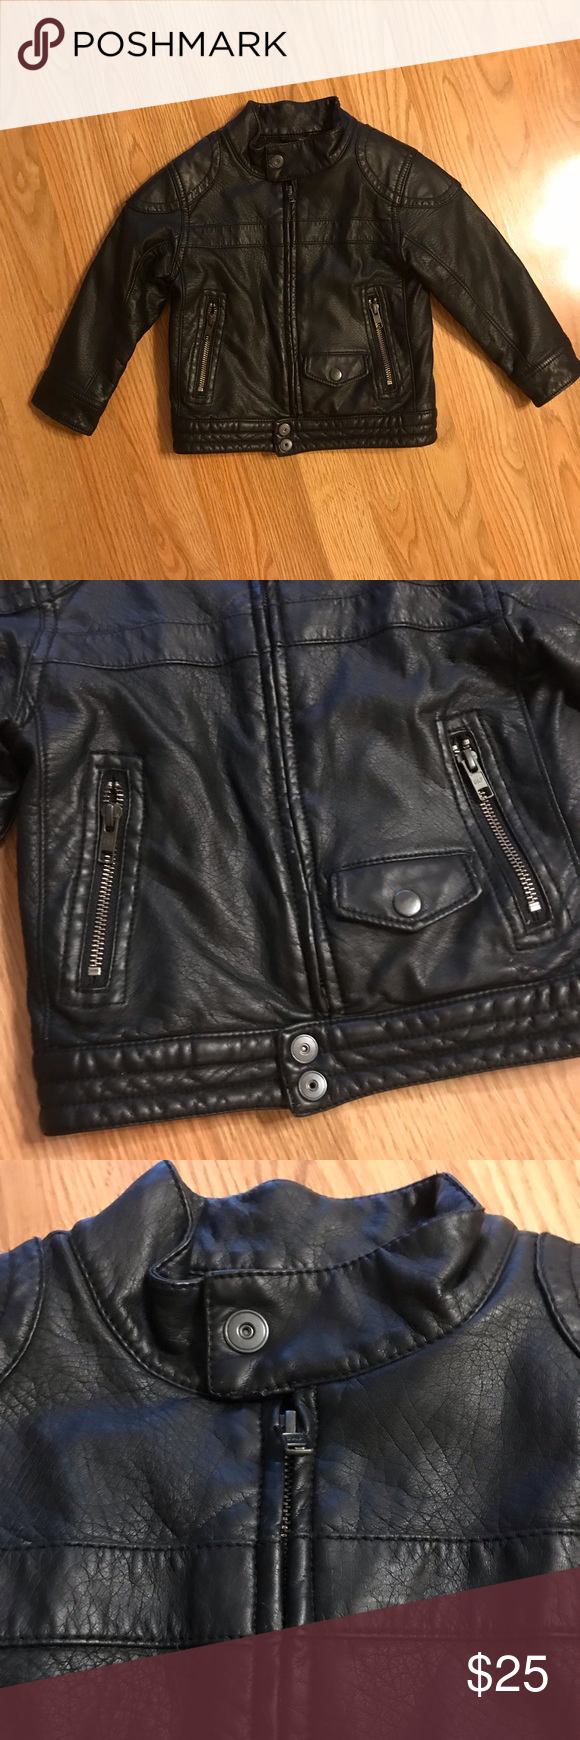 Baby Gap Toddler Moto Faux Leather Moto Jacket Brand Baby Gap Features Cute Moto Style Condition Faux Leather Moto Jacket Leather Moto Jacket Jacket Brands [ 1740 x 580 Pixel ]